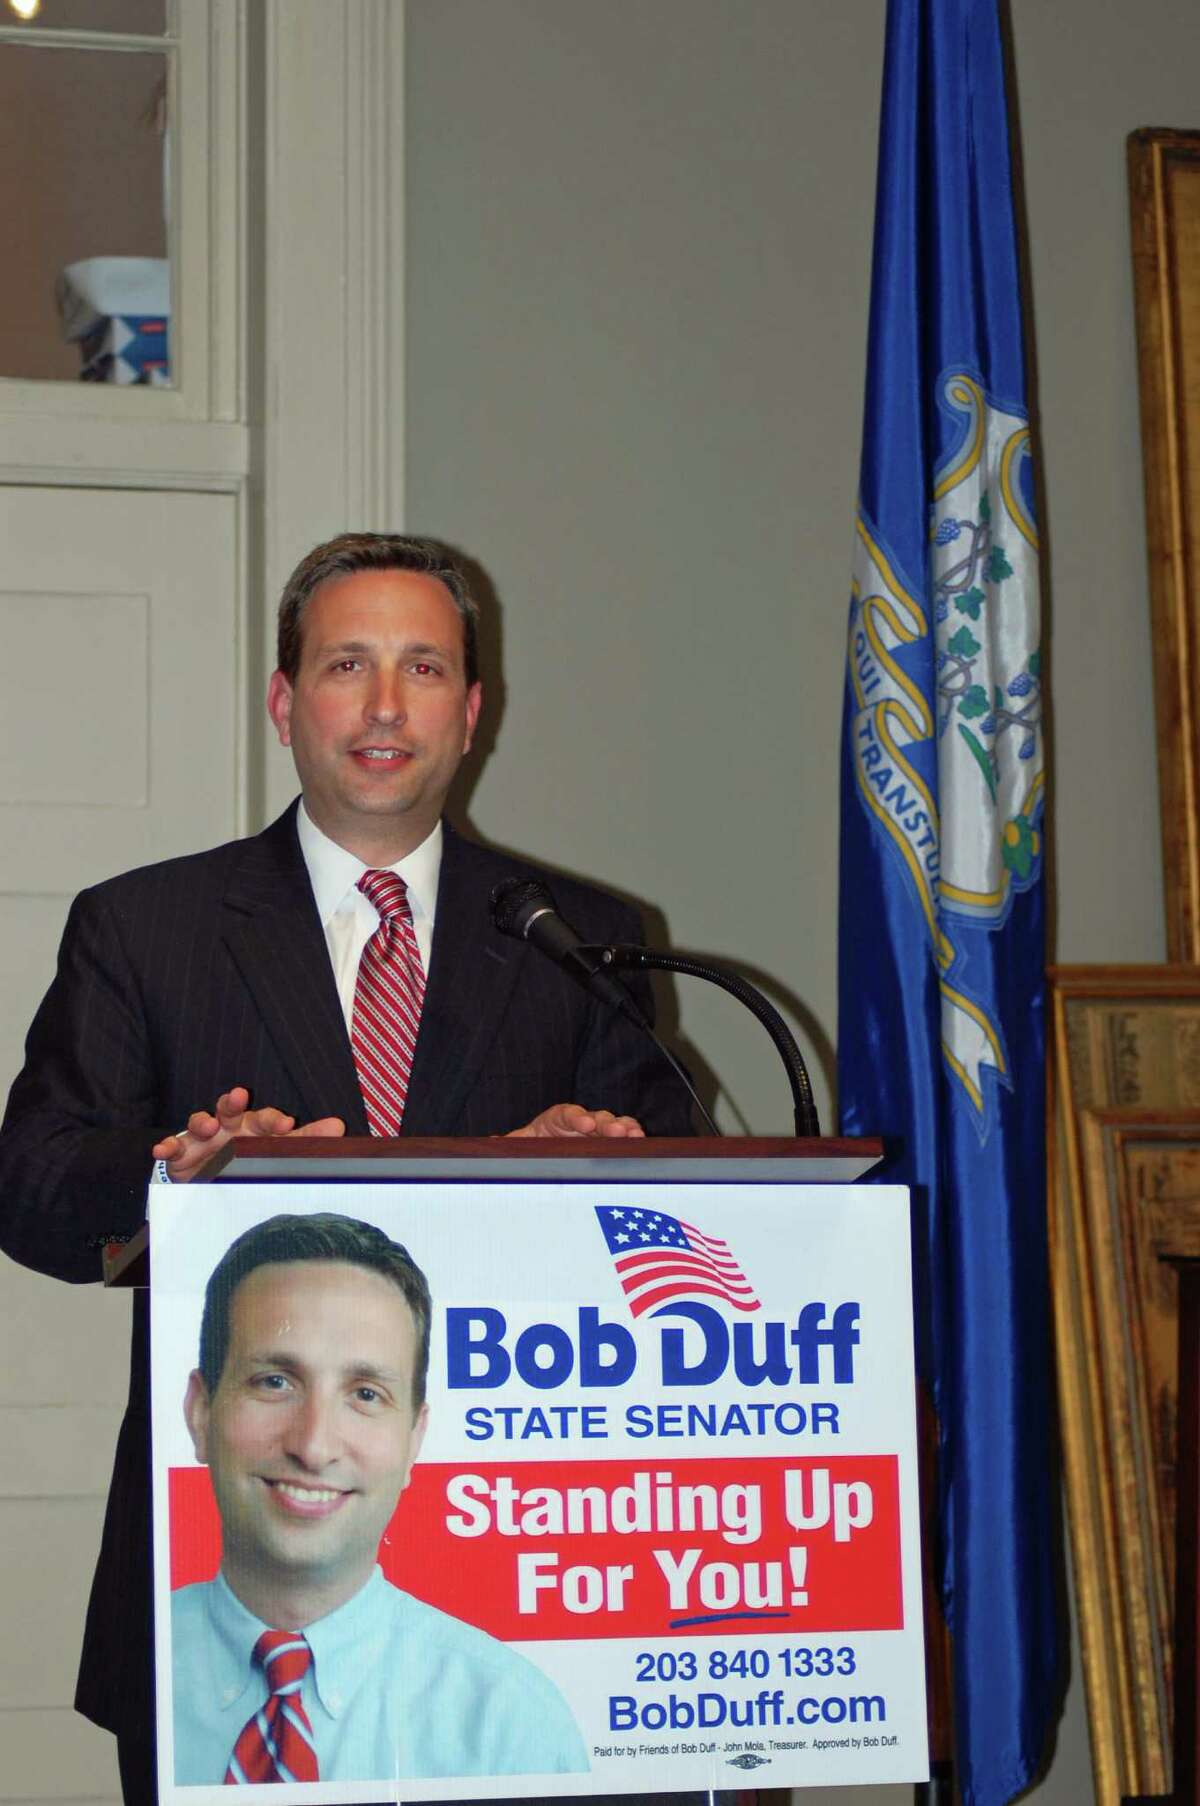 State Sen. Bob Duff (D-Norwalk, Darien) announces his bid for re-election Monday evening at the Mill Hill Historic Complex in Norwalk. He is running for his fifth term.